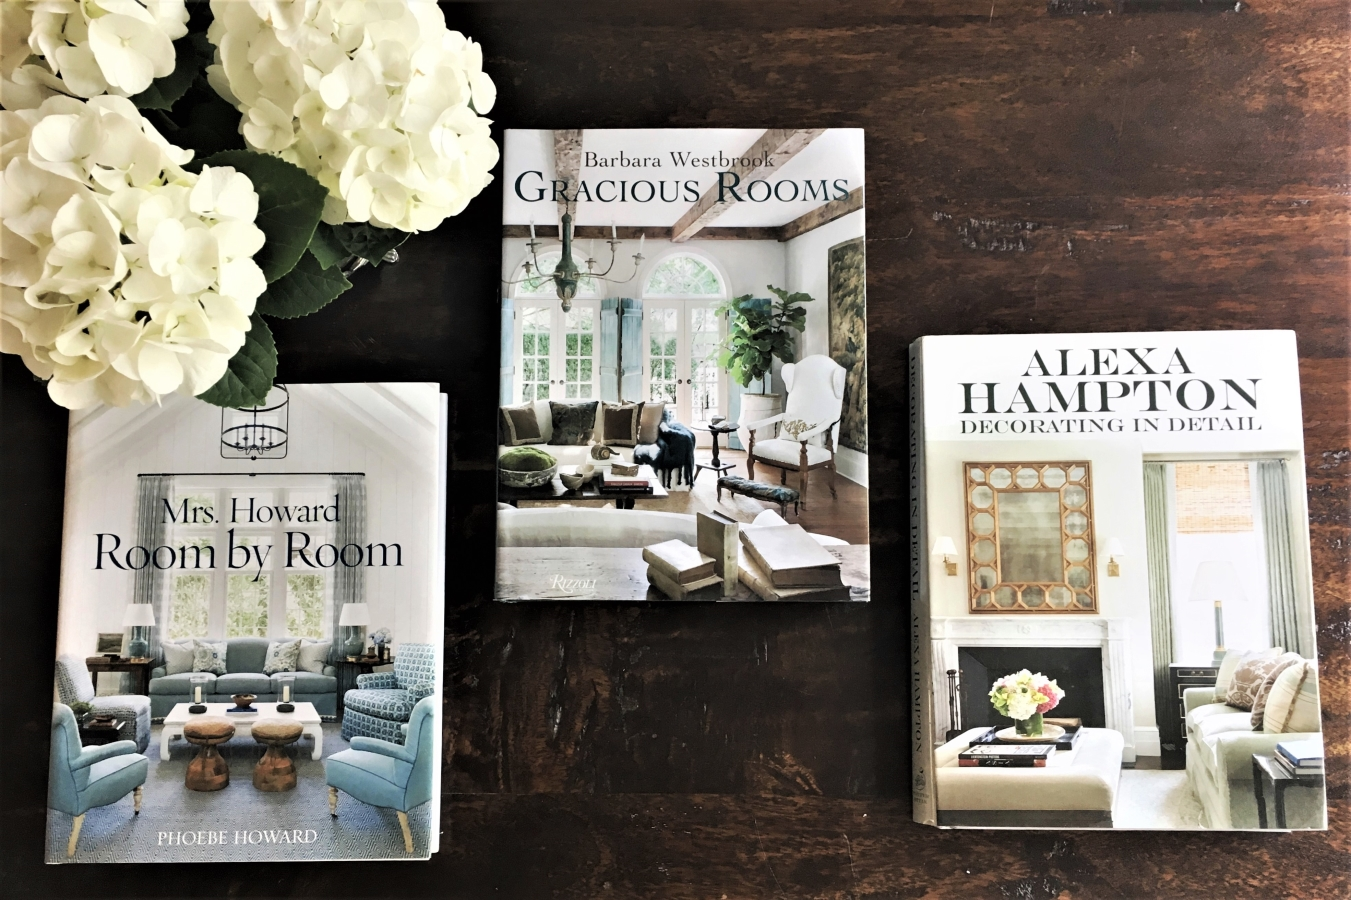 Some of my favorite coffee table books about homes: Barbara Westbrook, Phoebe Howard, Alexa Hampton - I use them for inspiration constantly!